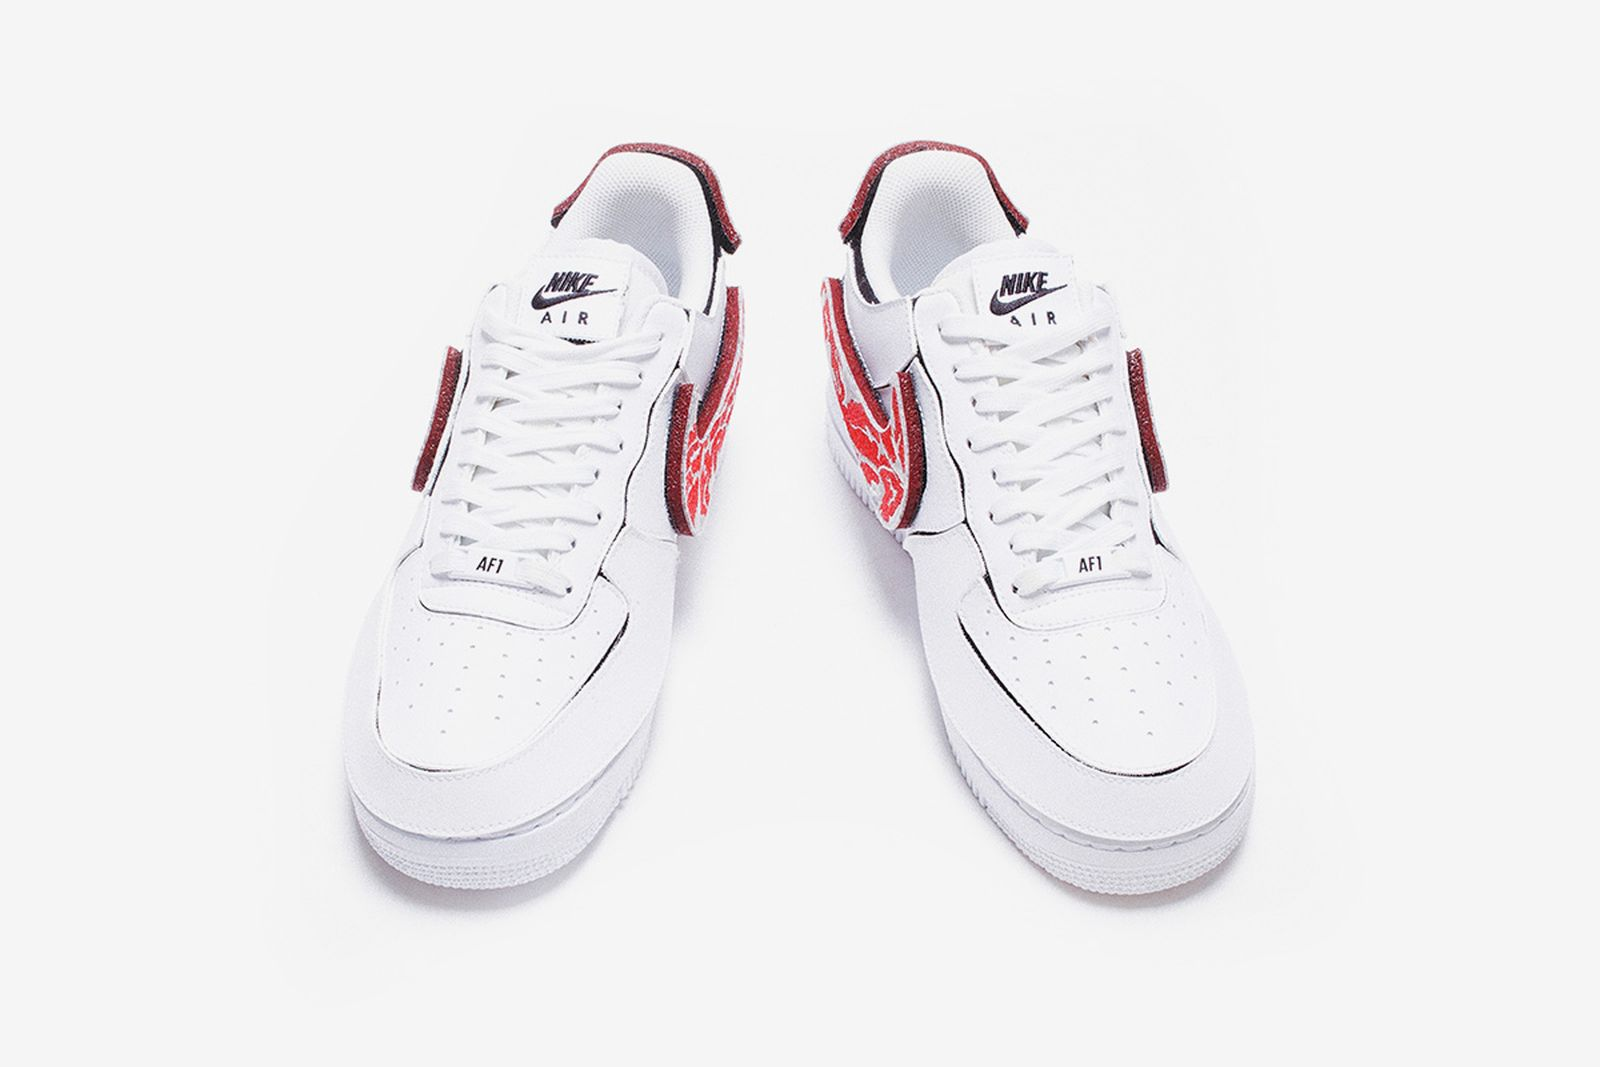 bait-nike-air-force-1-a5-wagyu-release-date-price-06